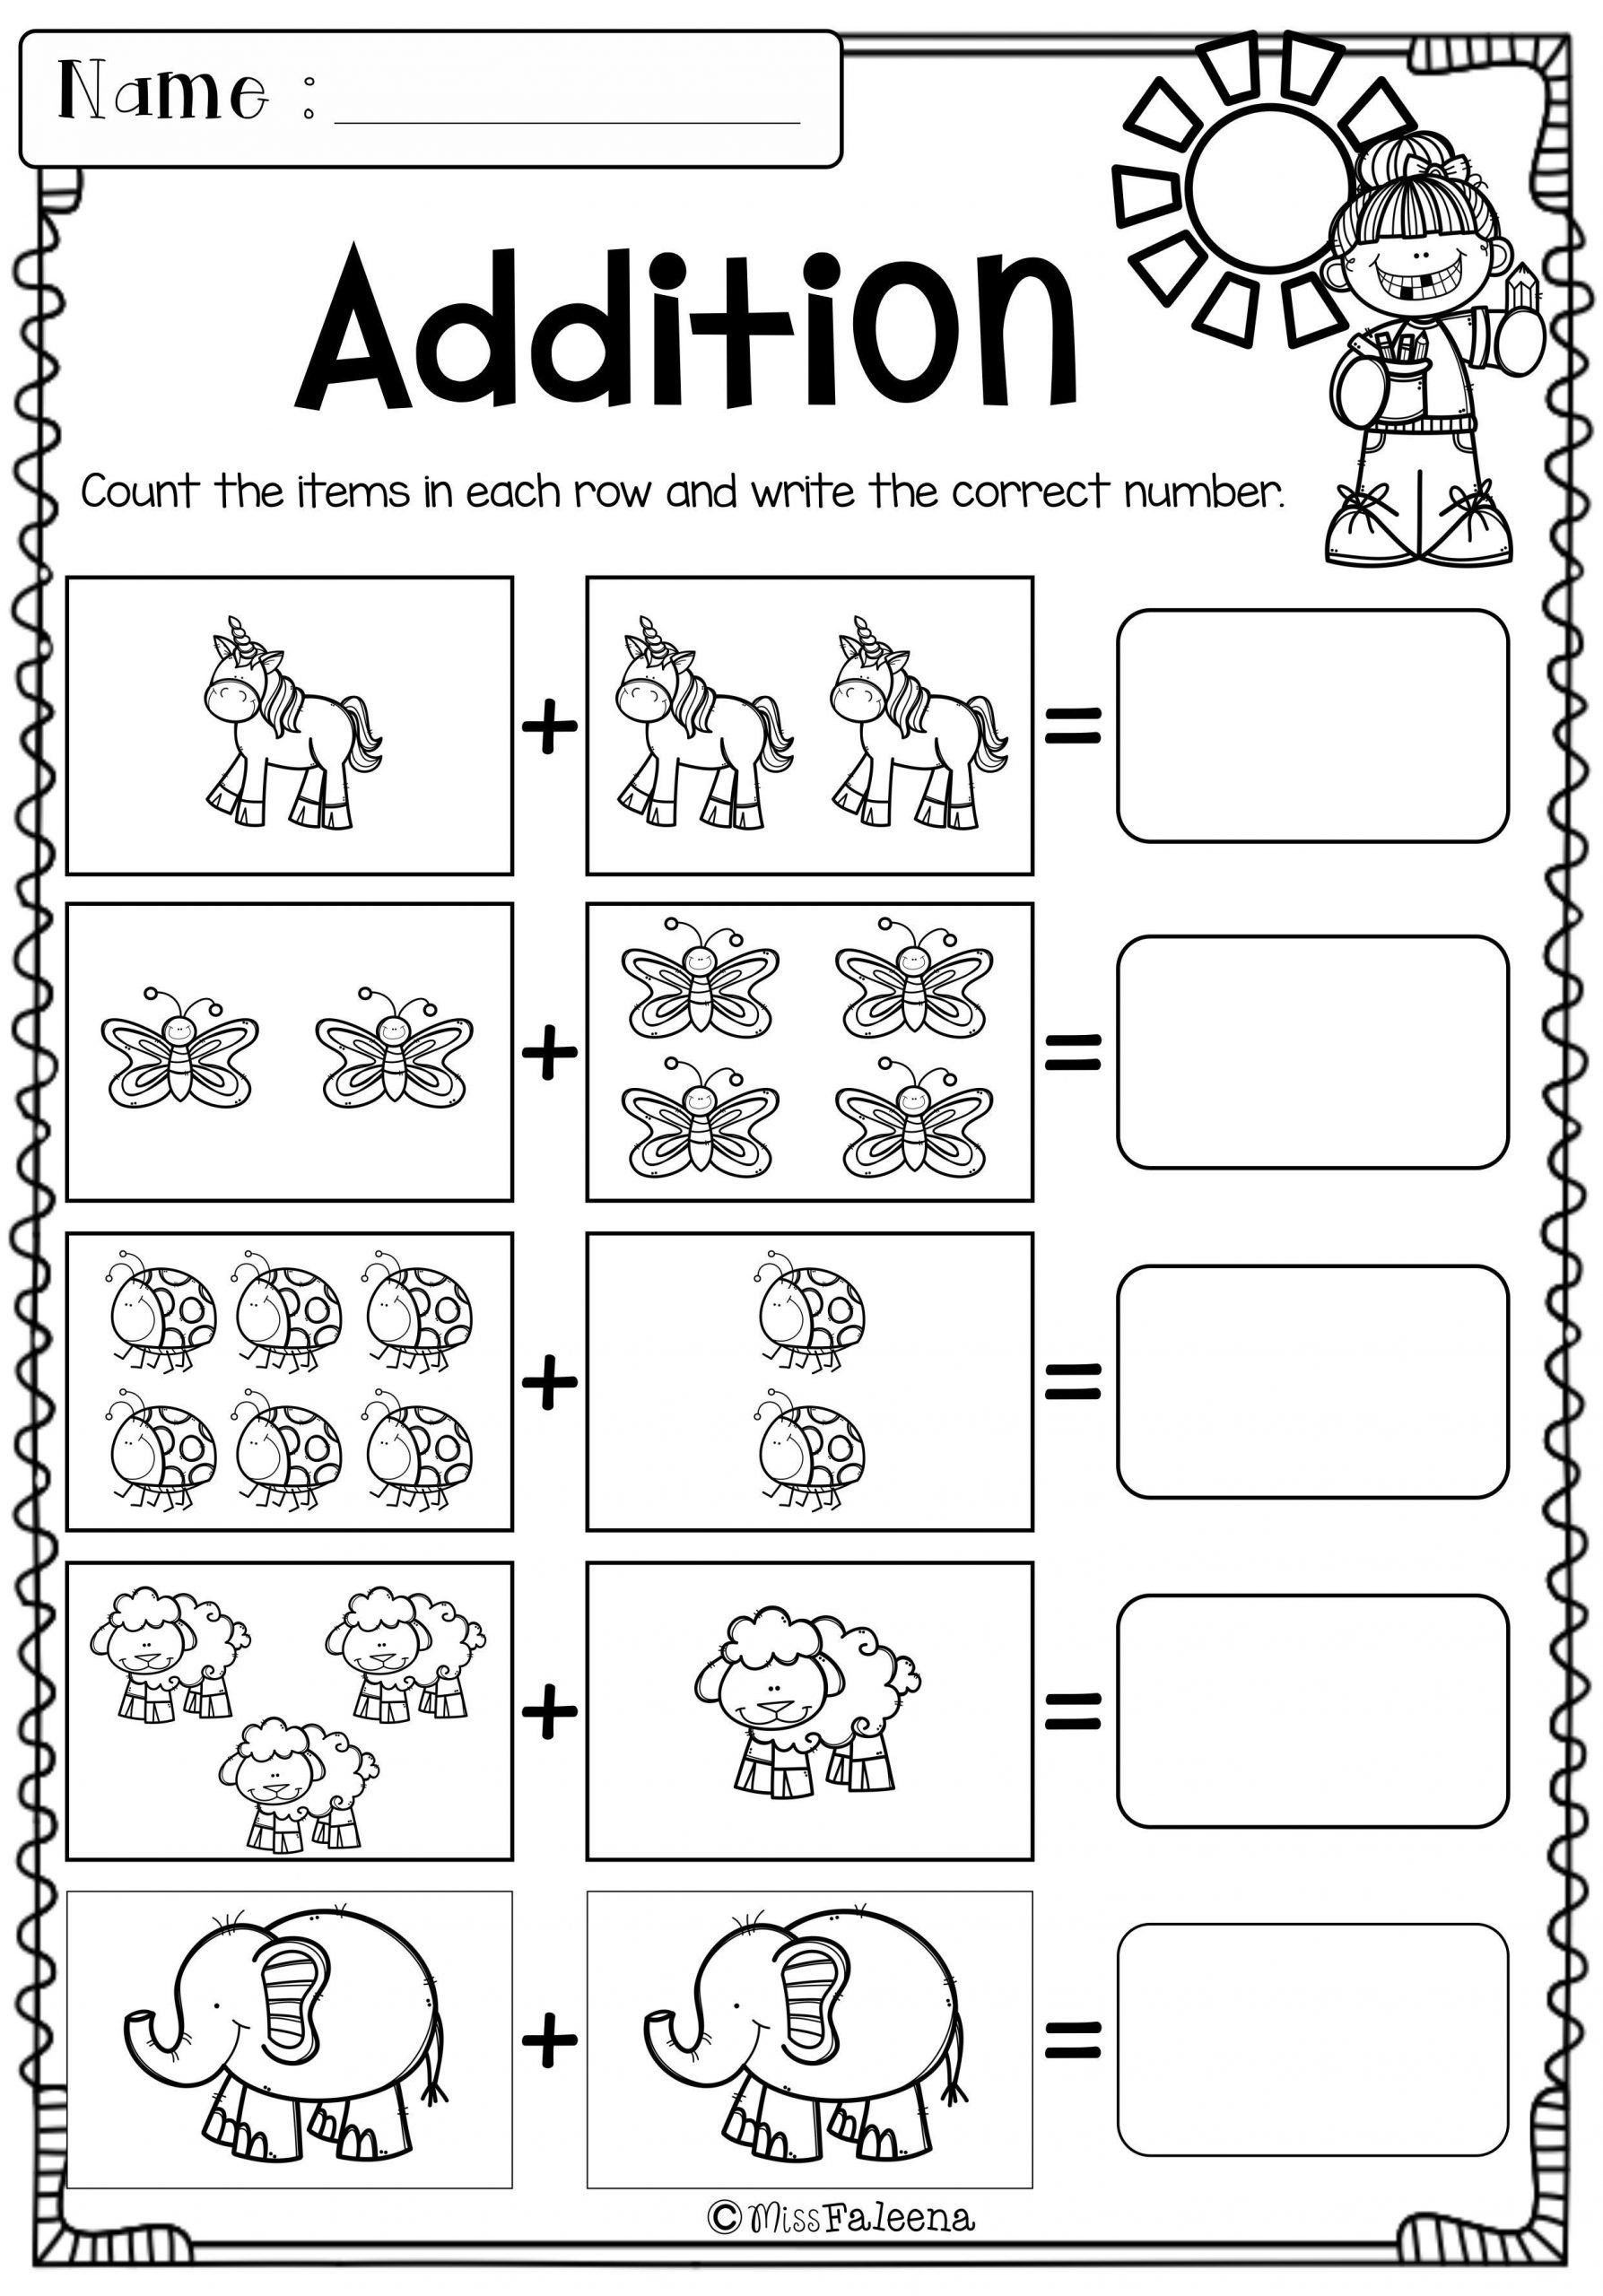 20 Morning Worksheets For Kindergarten In